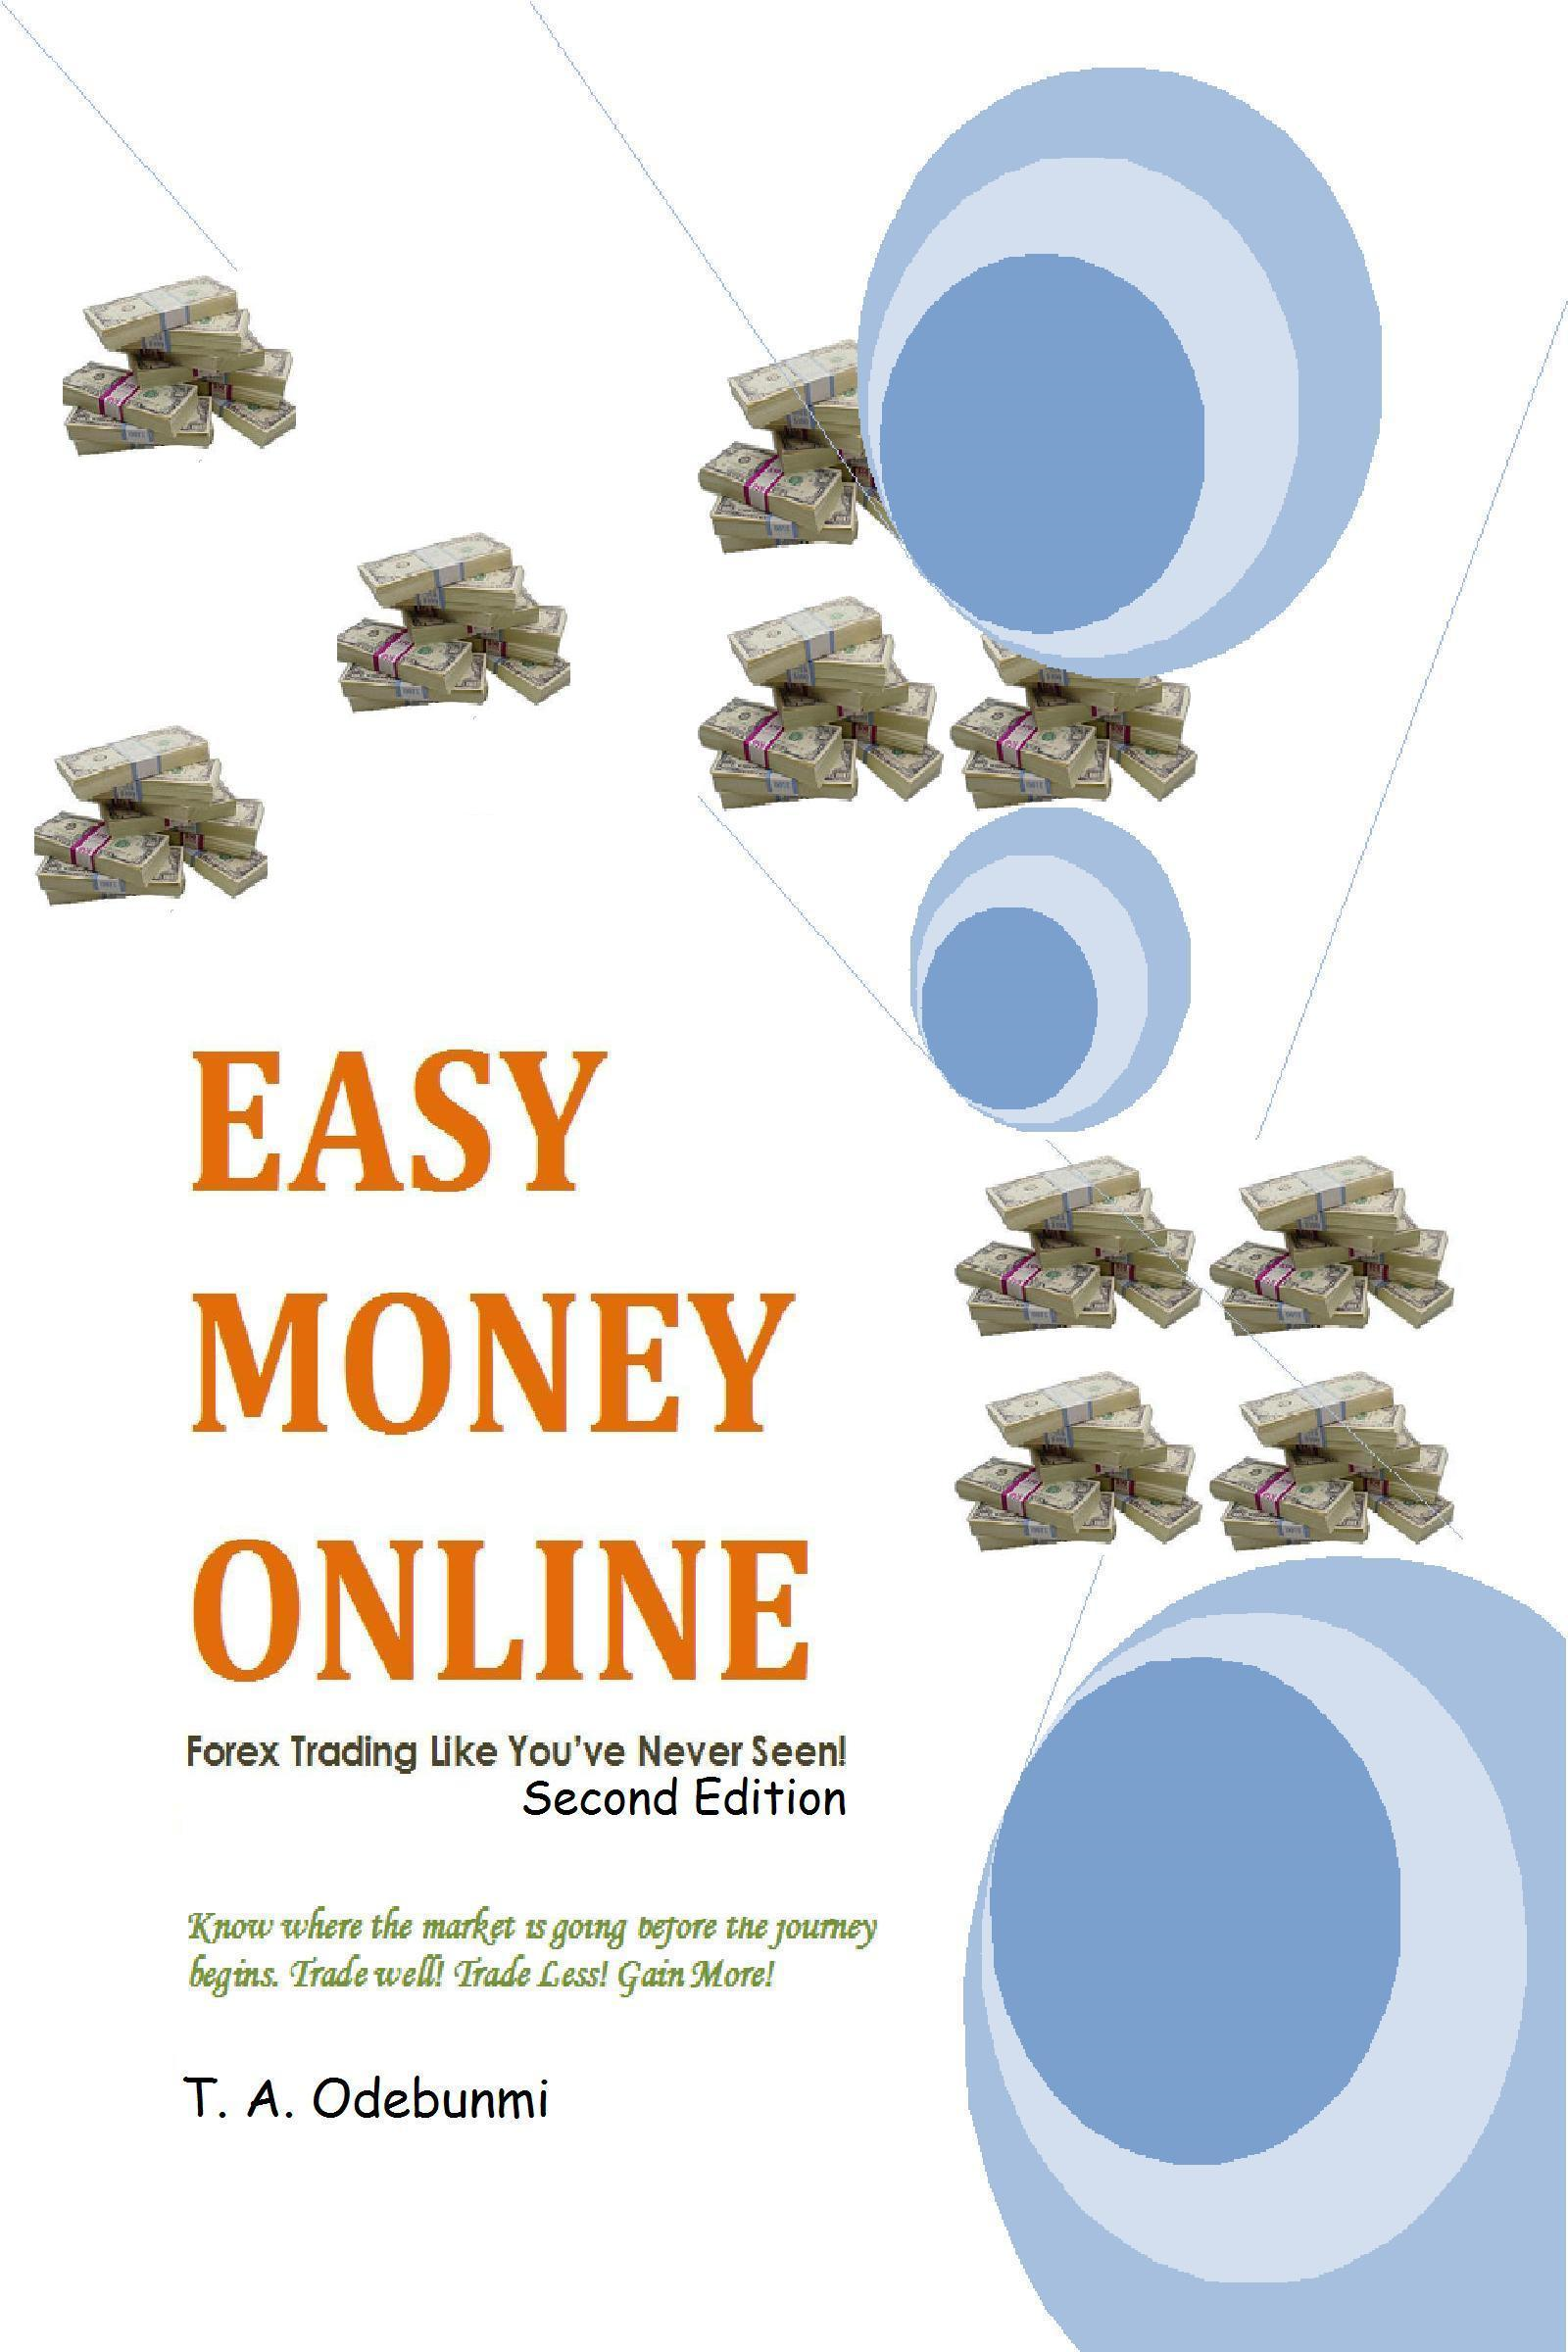 EASY MONEY ONLINE: Forex Trading Like You've Never Seen! 2ed By: Tolulope A. Odebunmi